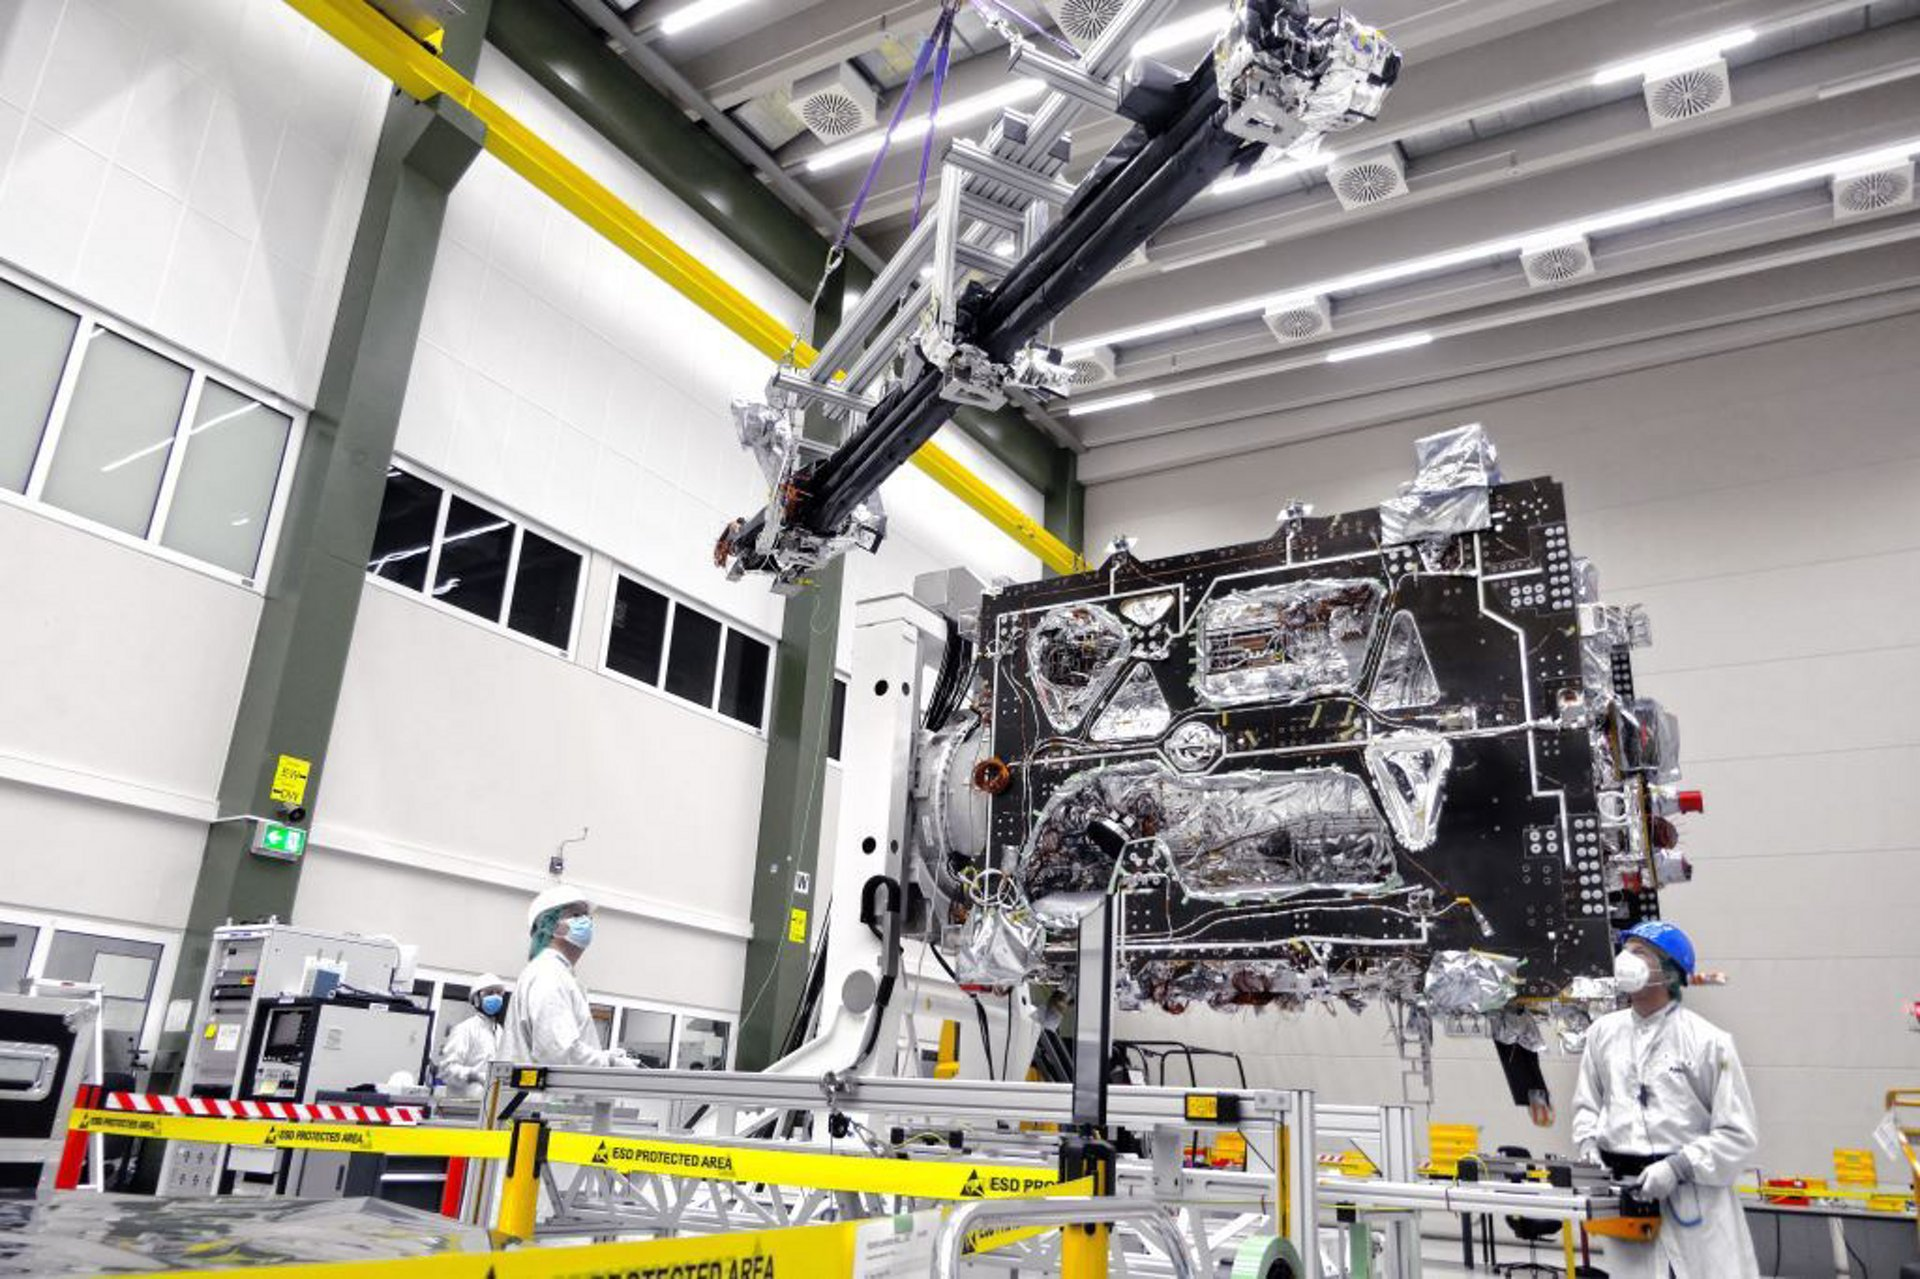 JUICE, the European Space Agency's JUpiter ICy moons Explorer mission, has successfully passed its latest milestone: space engineers at Airbus' satellite integration centre in Friedrichshafen (Germany) have attached the magnetometer boom (MAGBOOM) to the spacecraft.